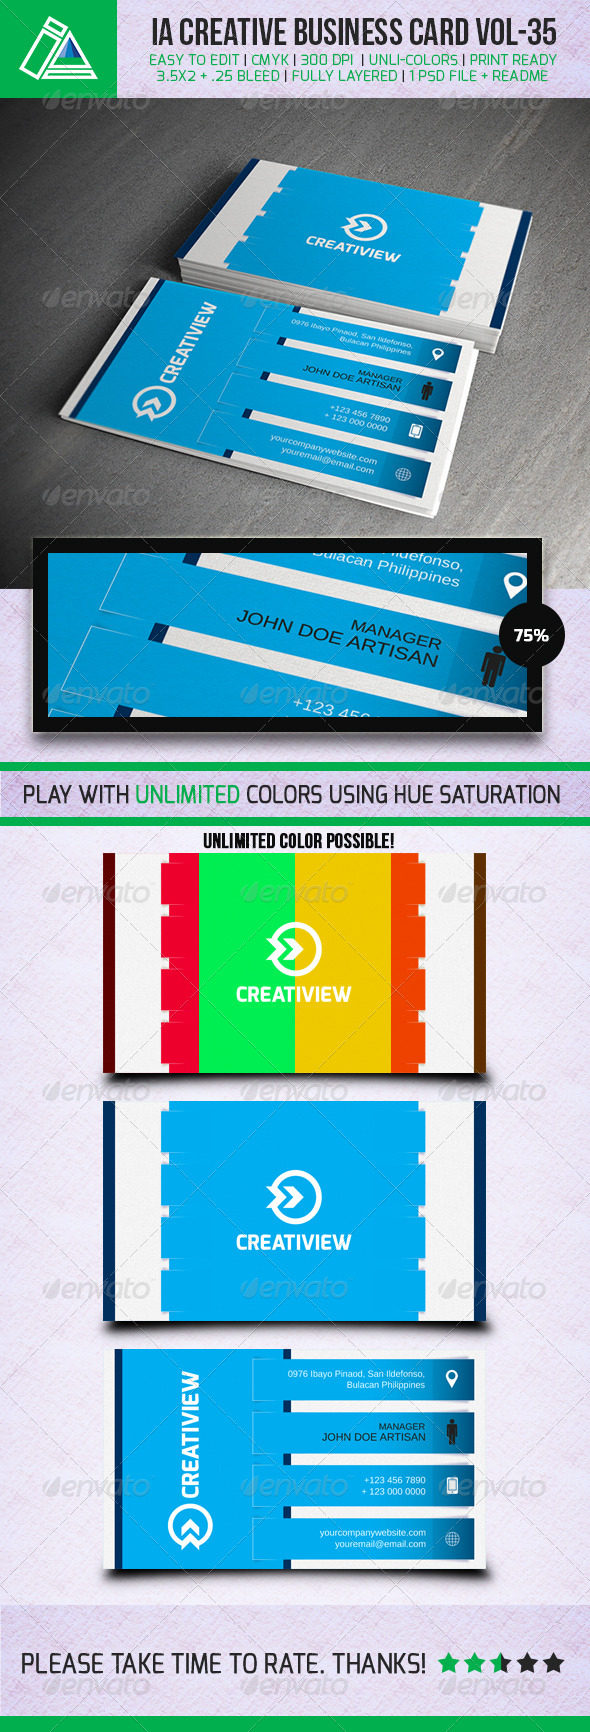 IntenseArtisan BUSINESS CARD VOL.35 - Creative Business Cards